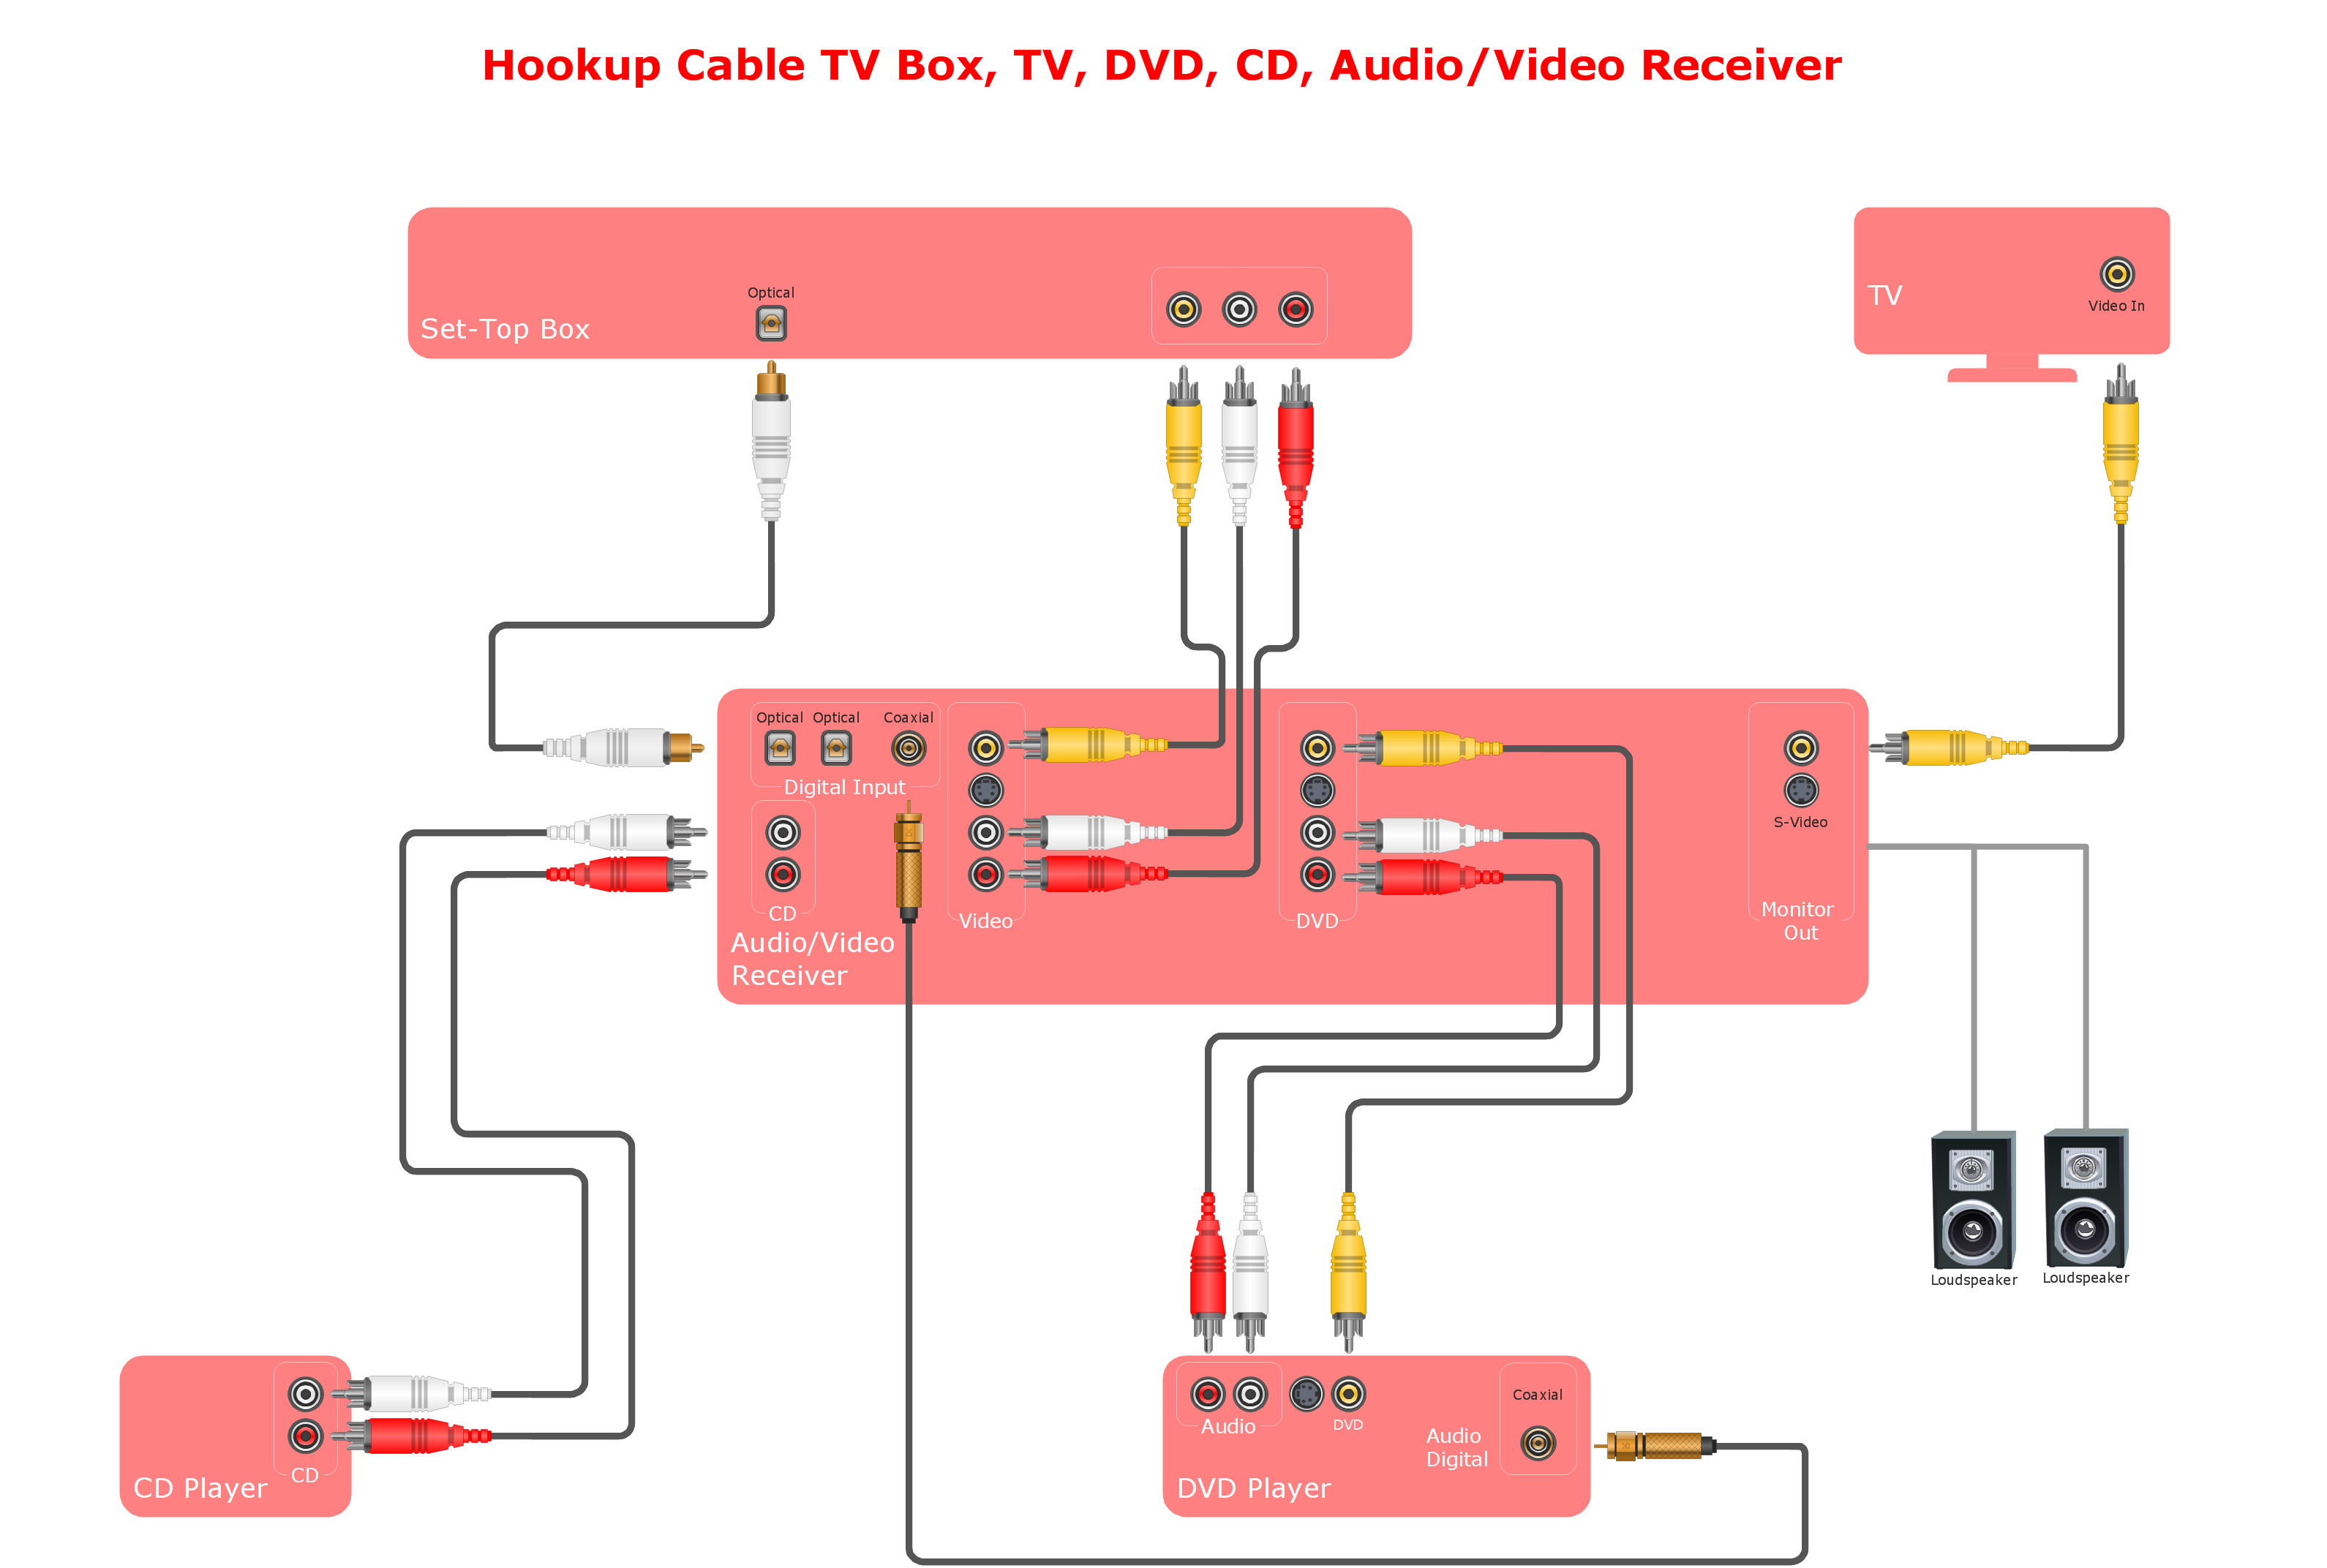 Hookup diagram - Stereo audio visual entertainment system